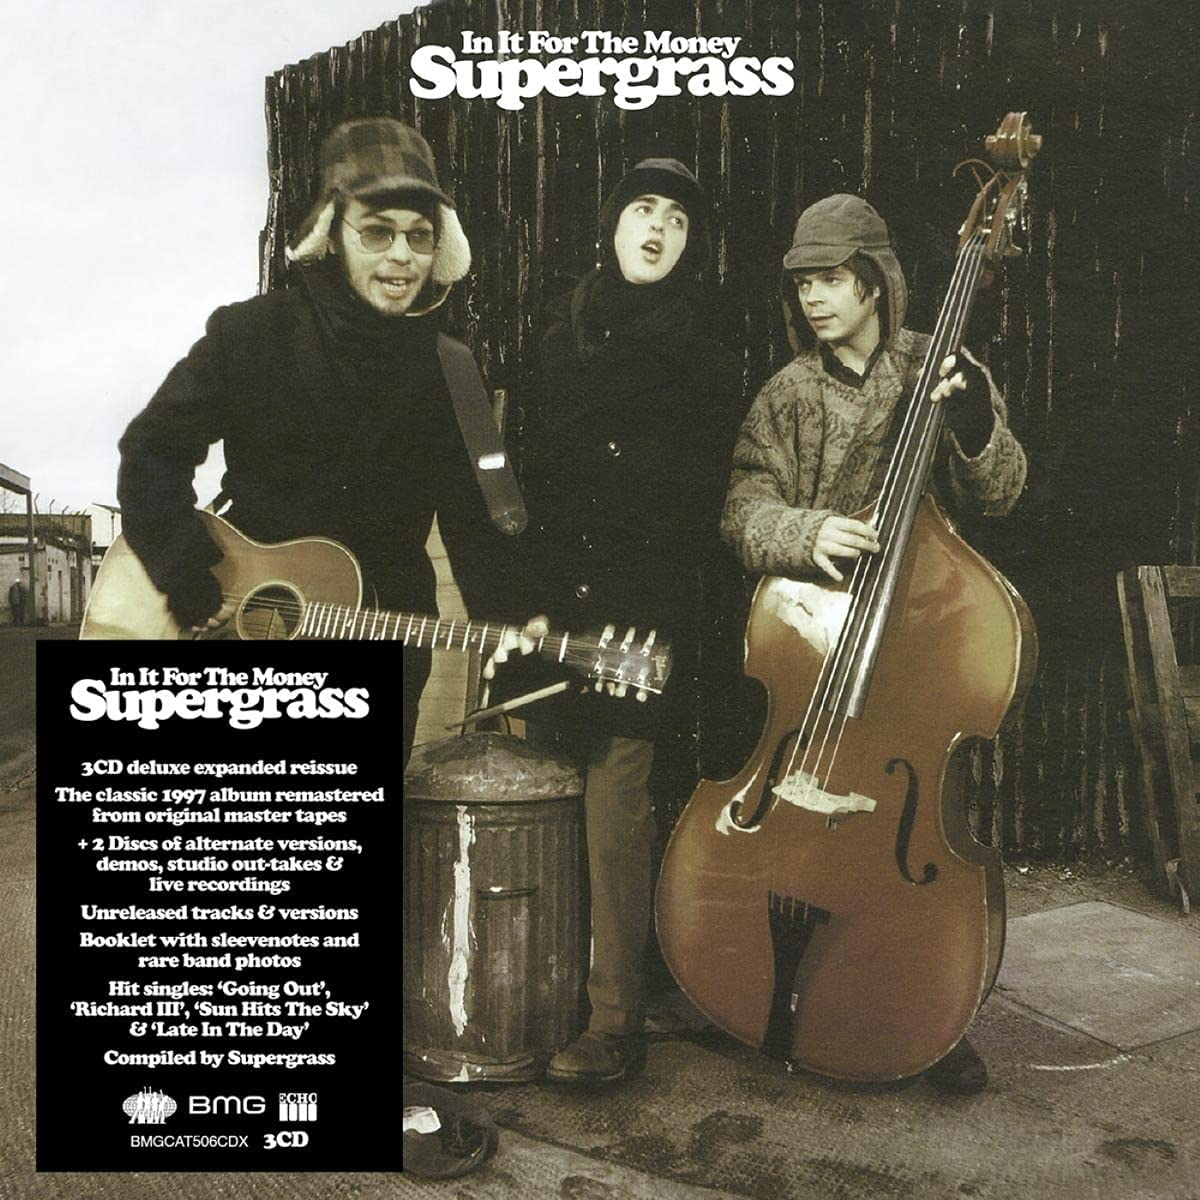 Supergrass / In It For The Money 3CD remastered and expanded reissue